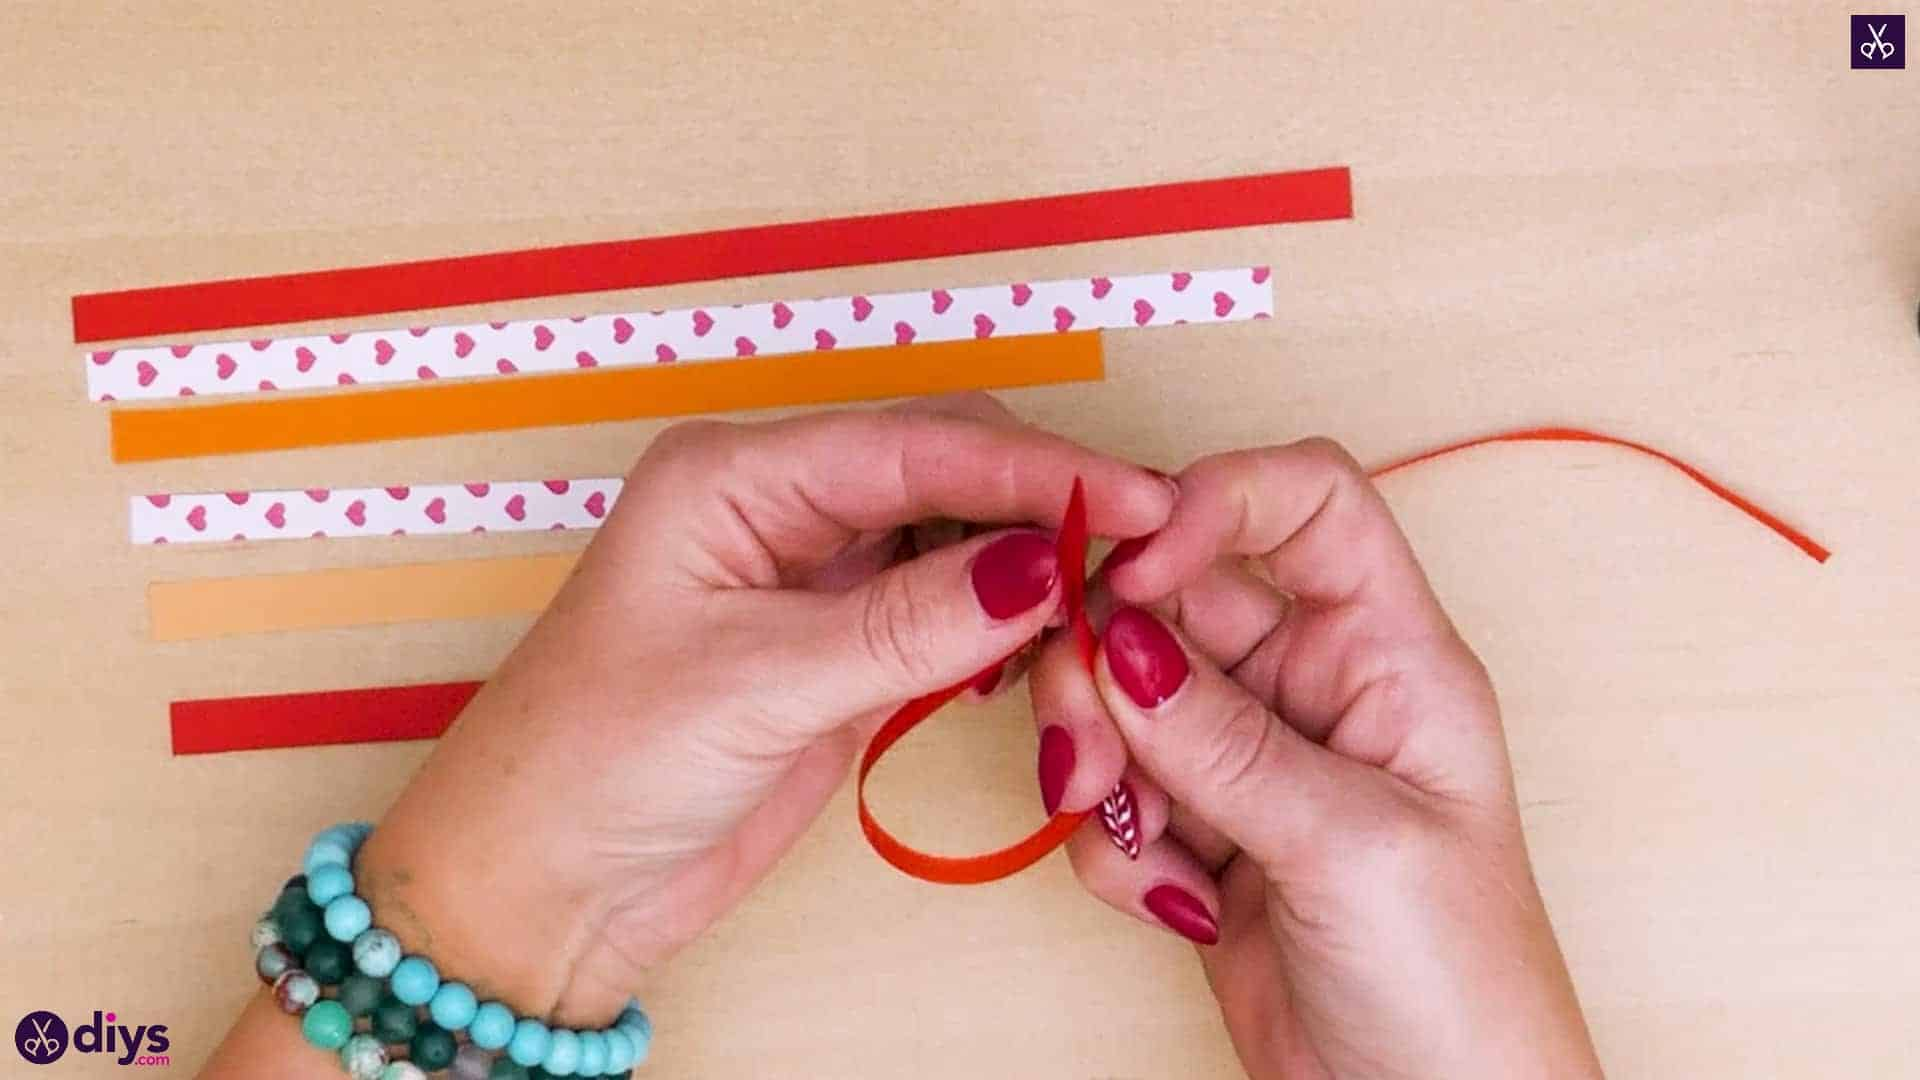 Diy ribbon heart step 4a